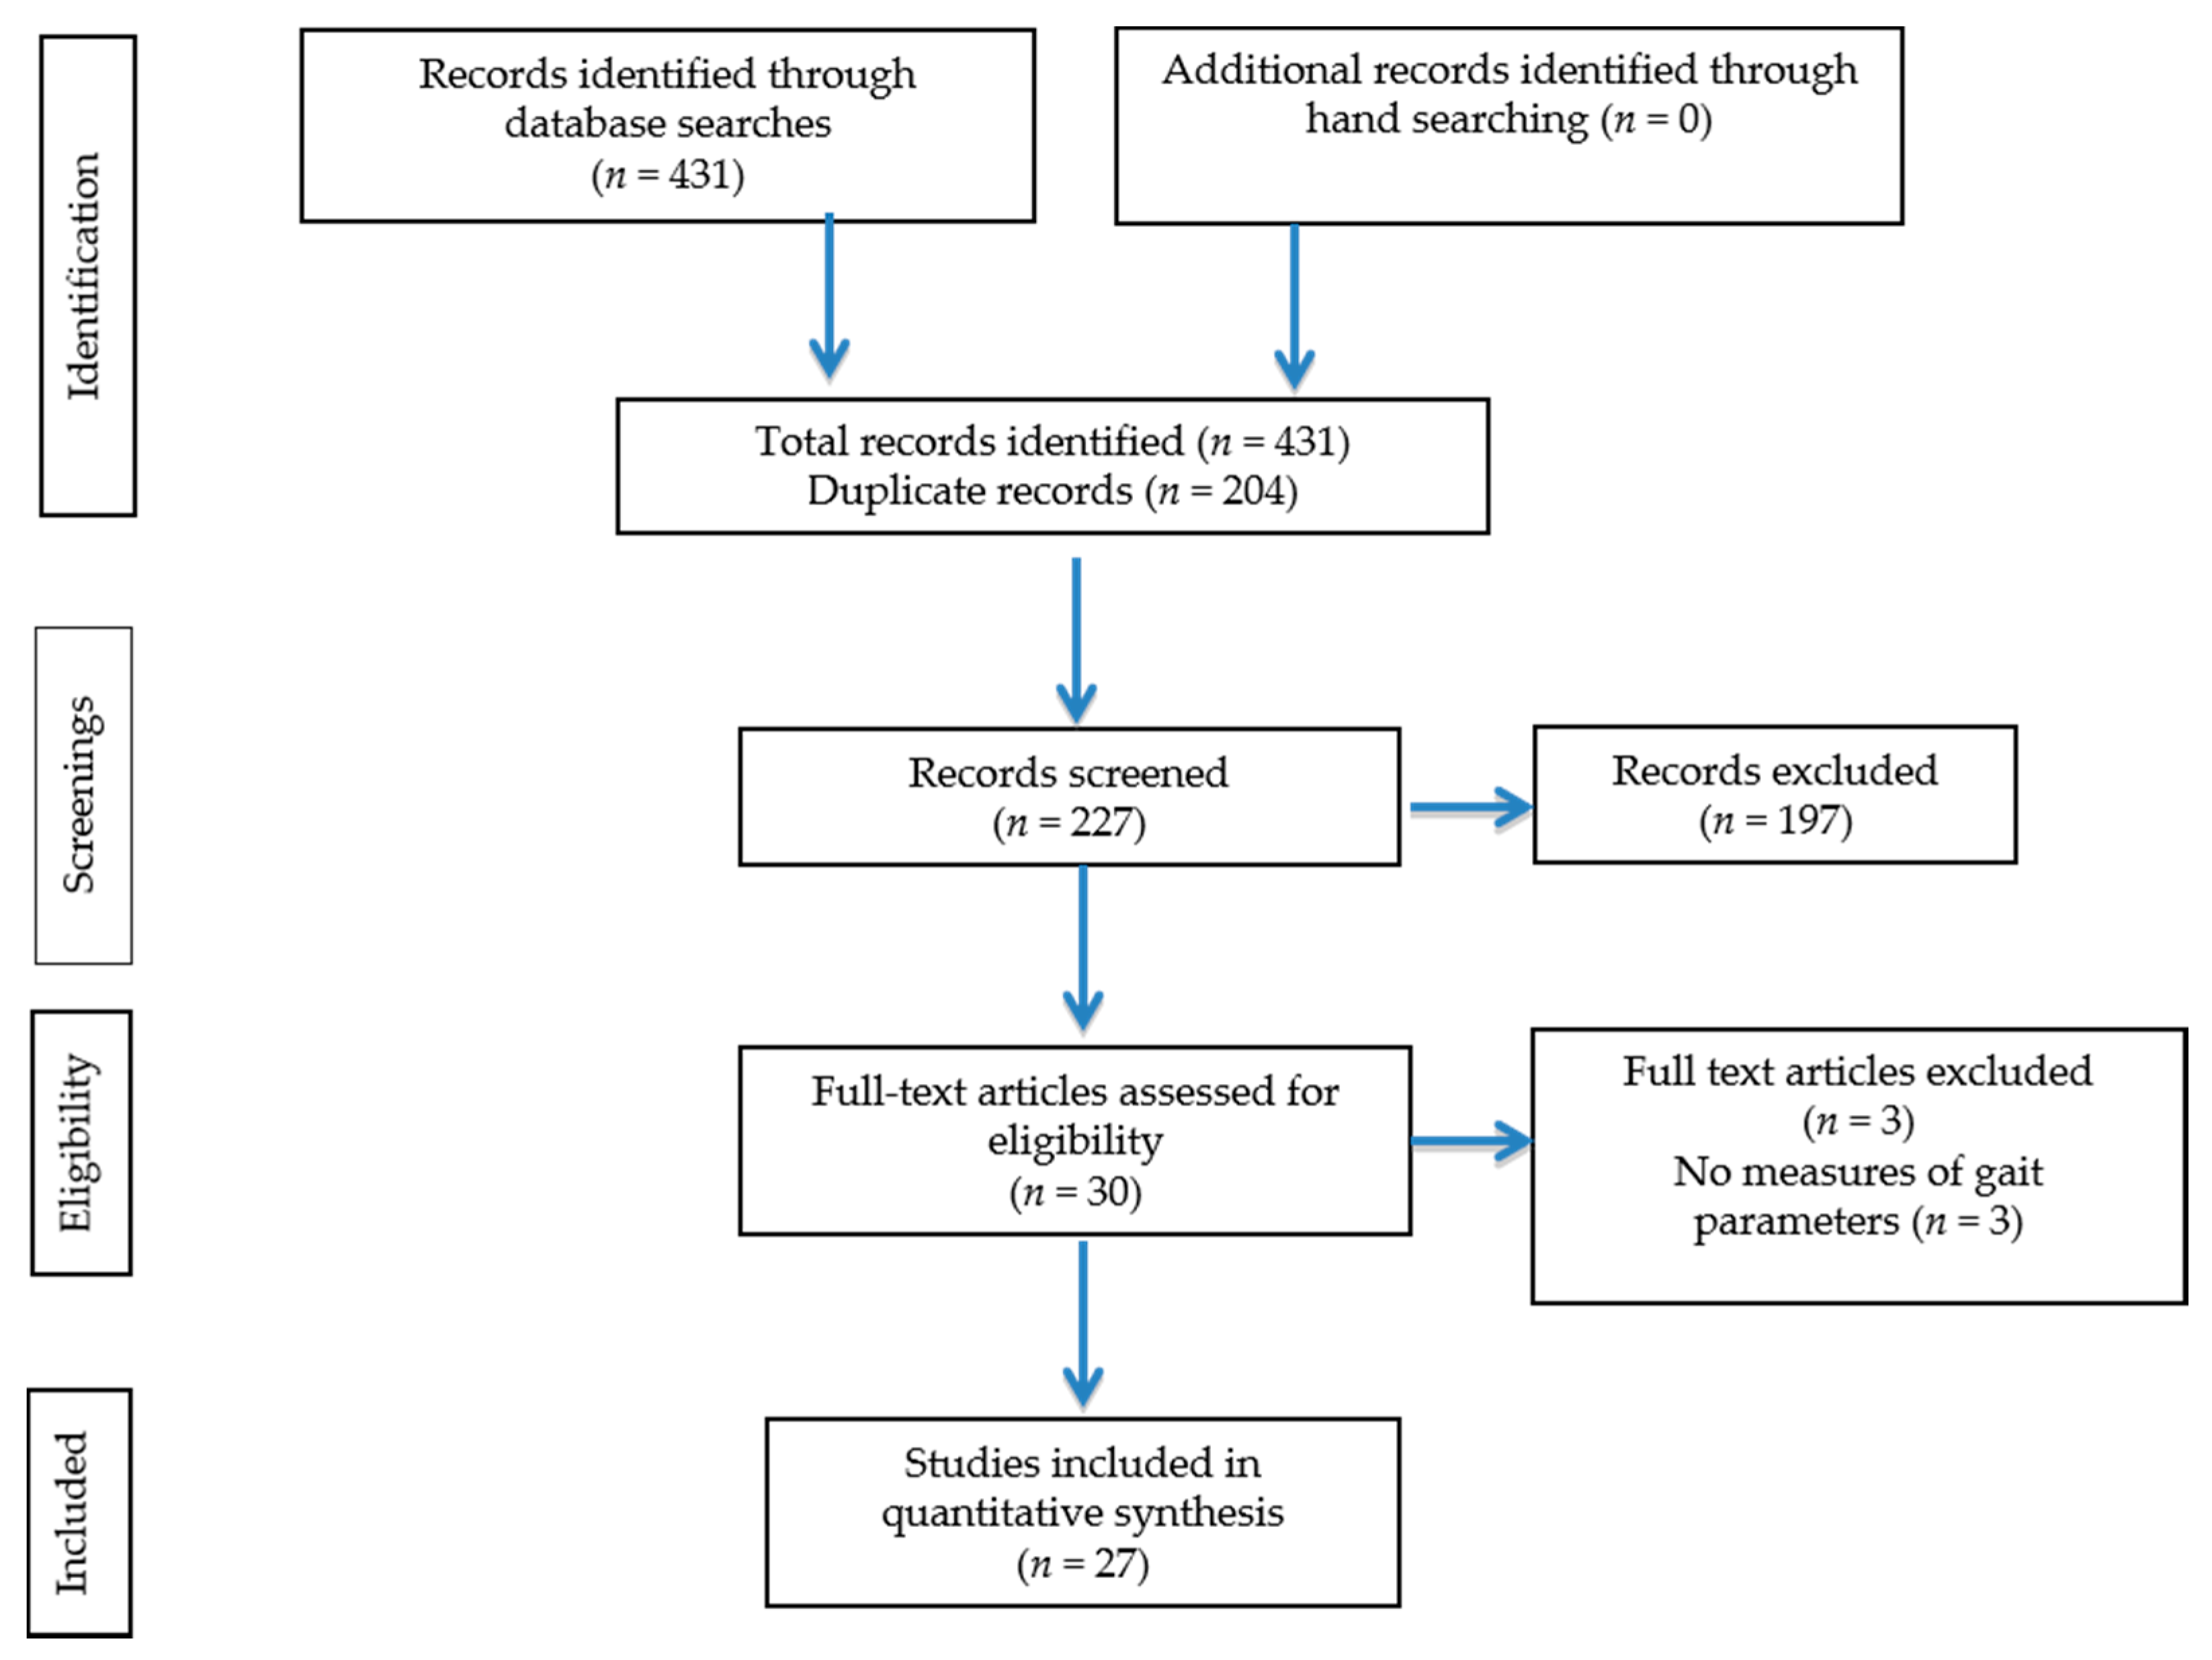 effect of exercise on depression literature review Review article exercise for depression in older adults: a meta-analysis of randomized controlled trials adjusting for publication bias  found that publication bias resulted in overstatement of effect sizes (ess)10 in the literature on exercise for depression.